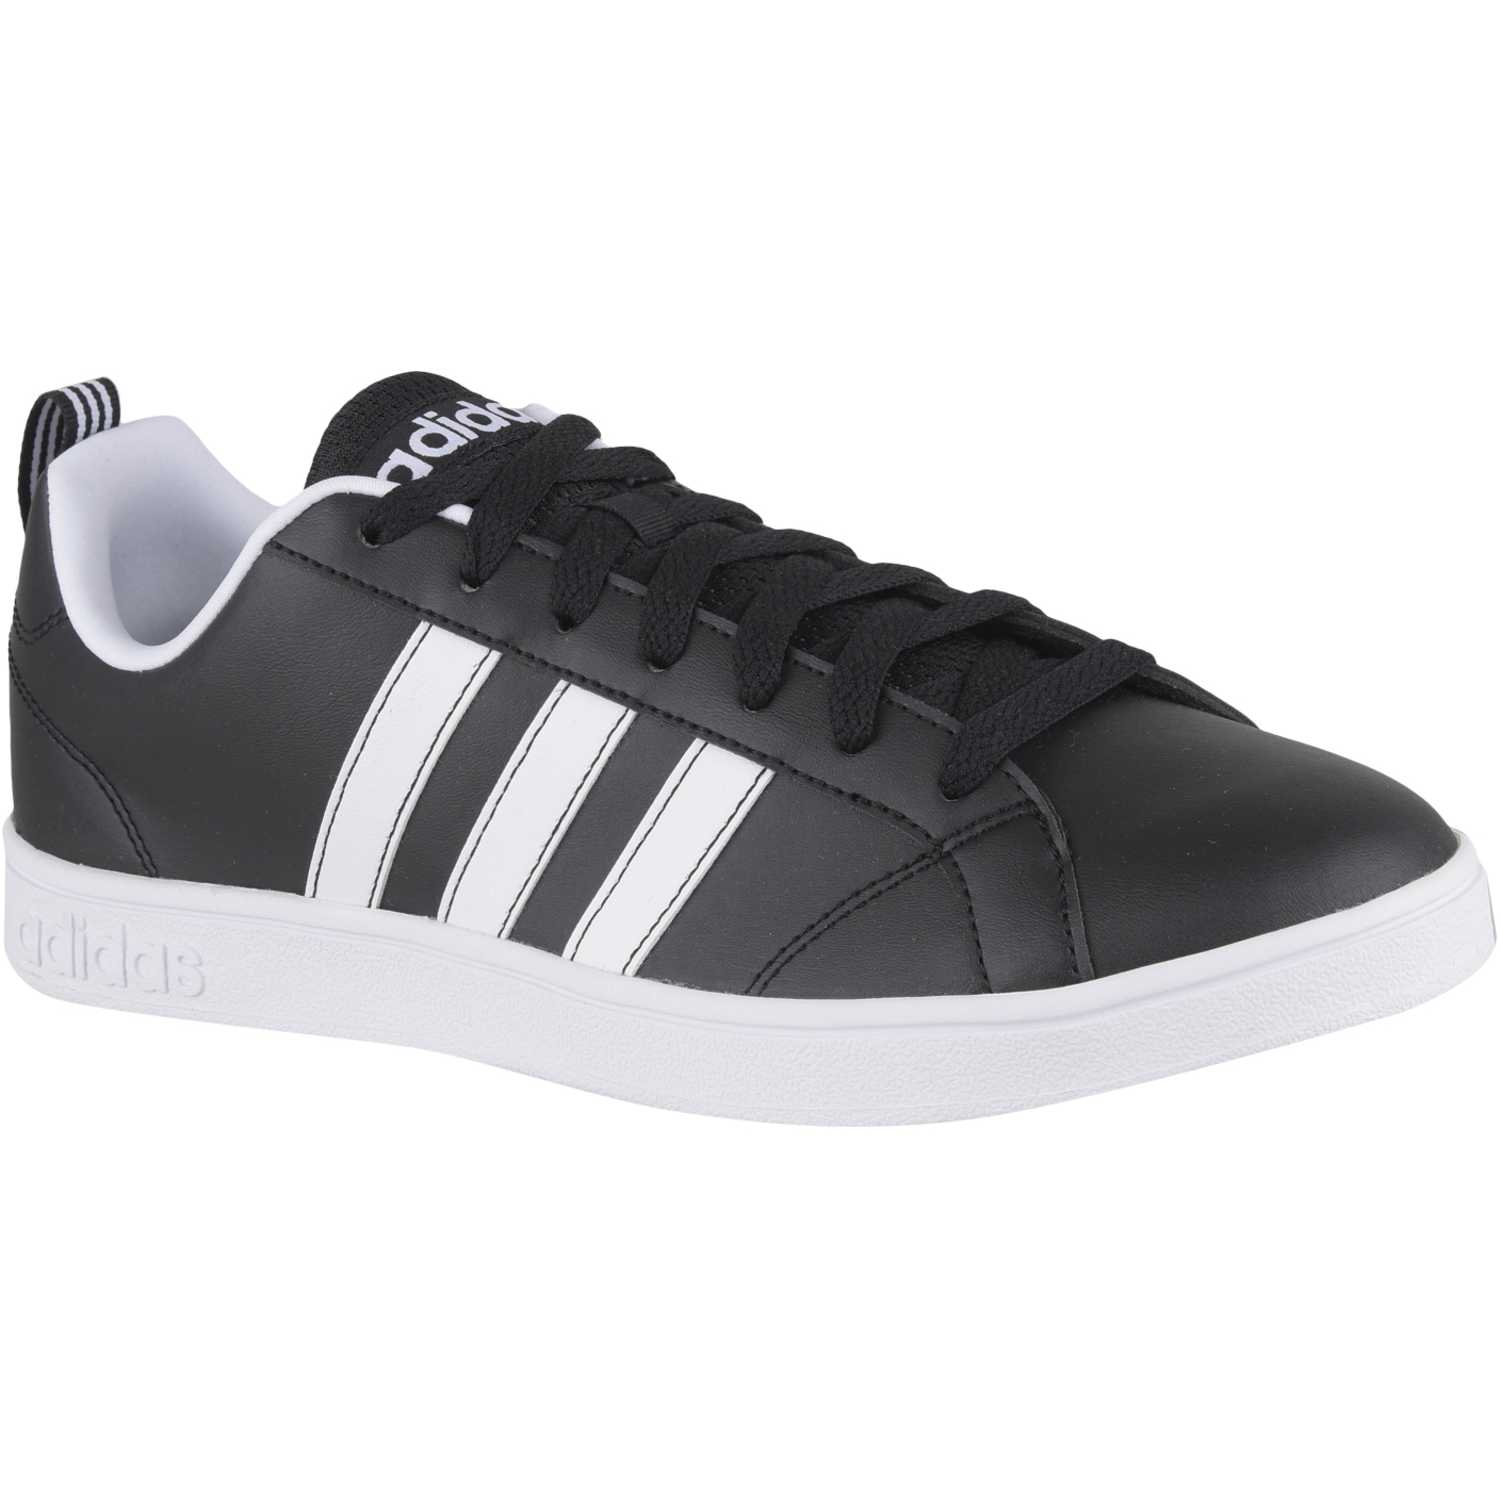 Casual de Hombre adidas NEO Negro blanco vs advantage